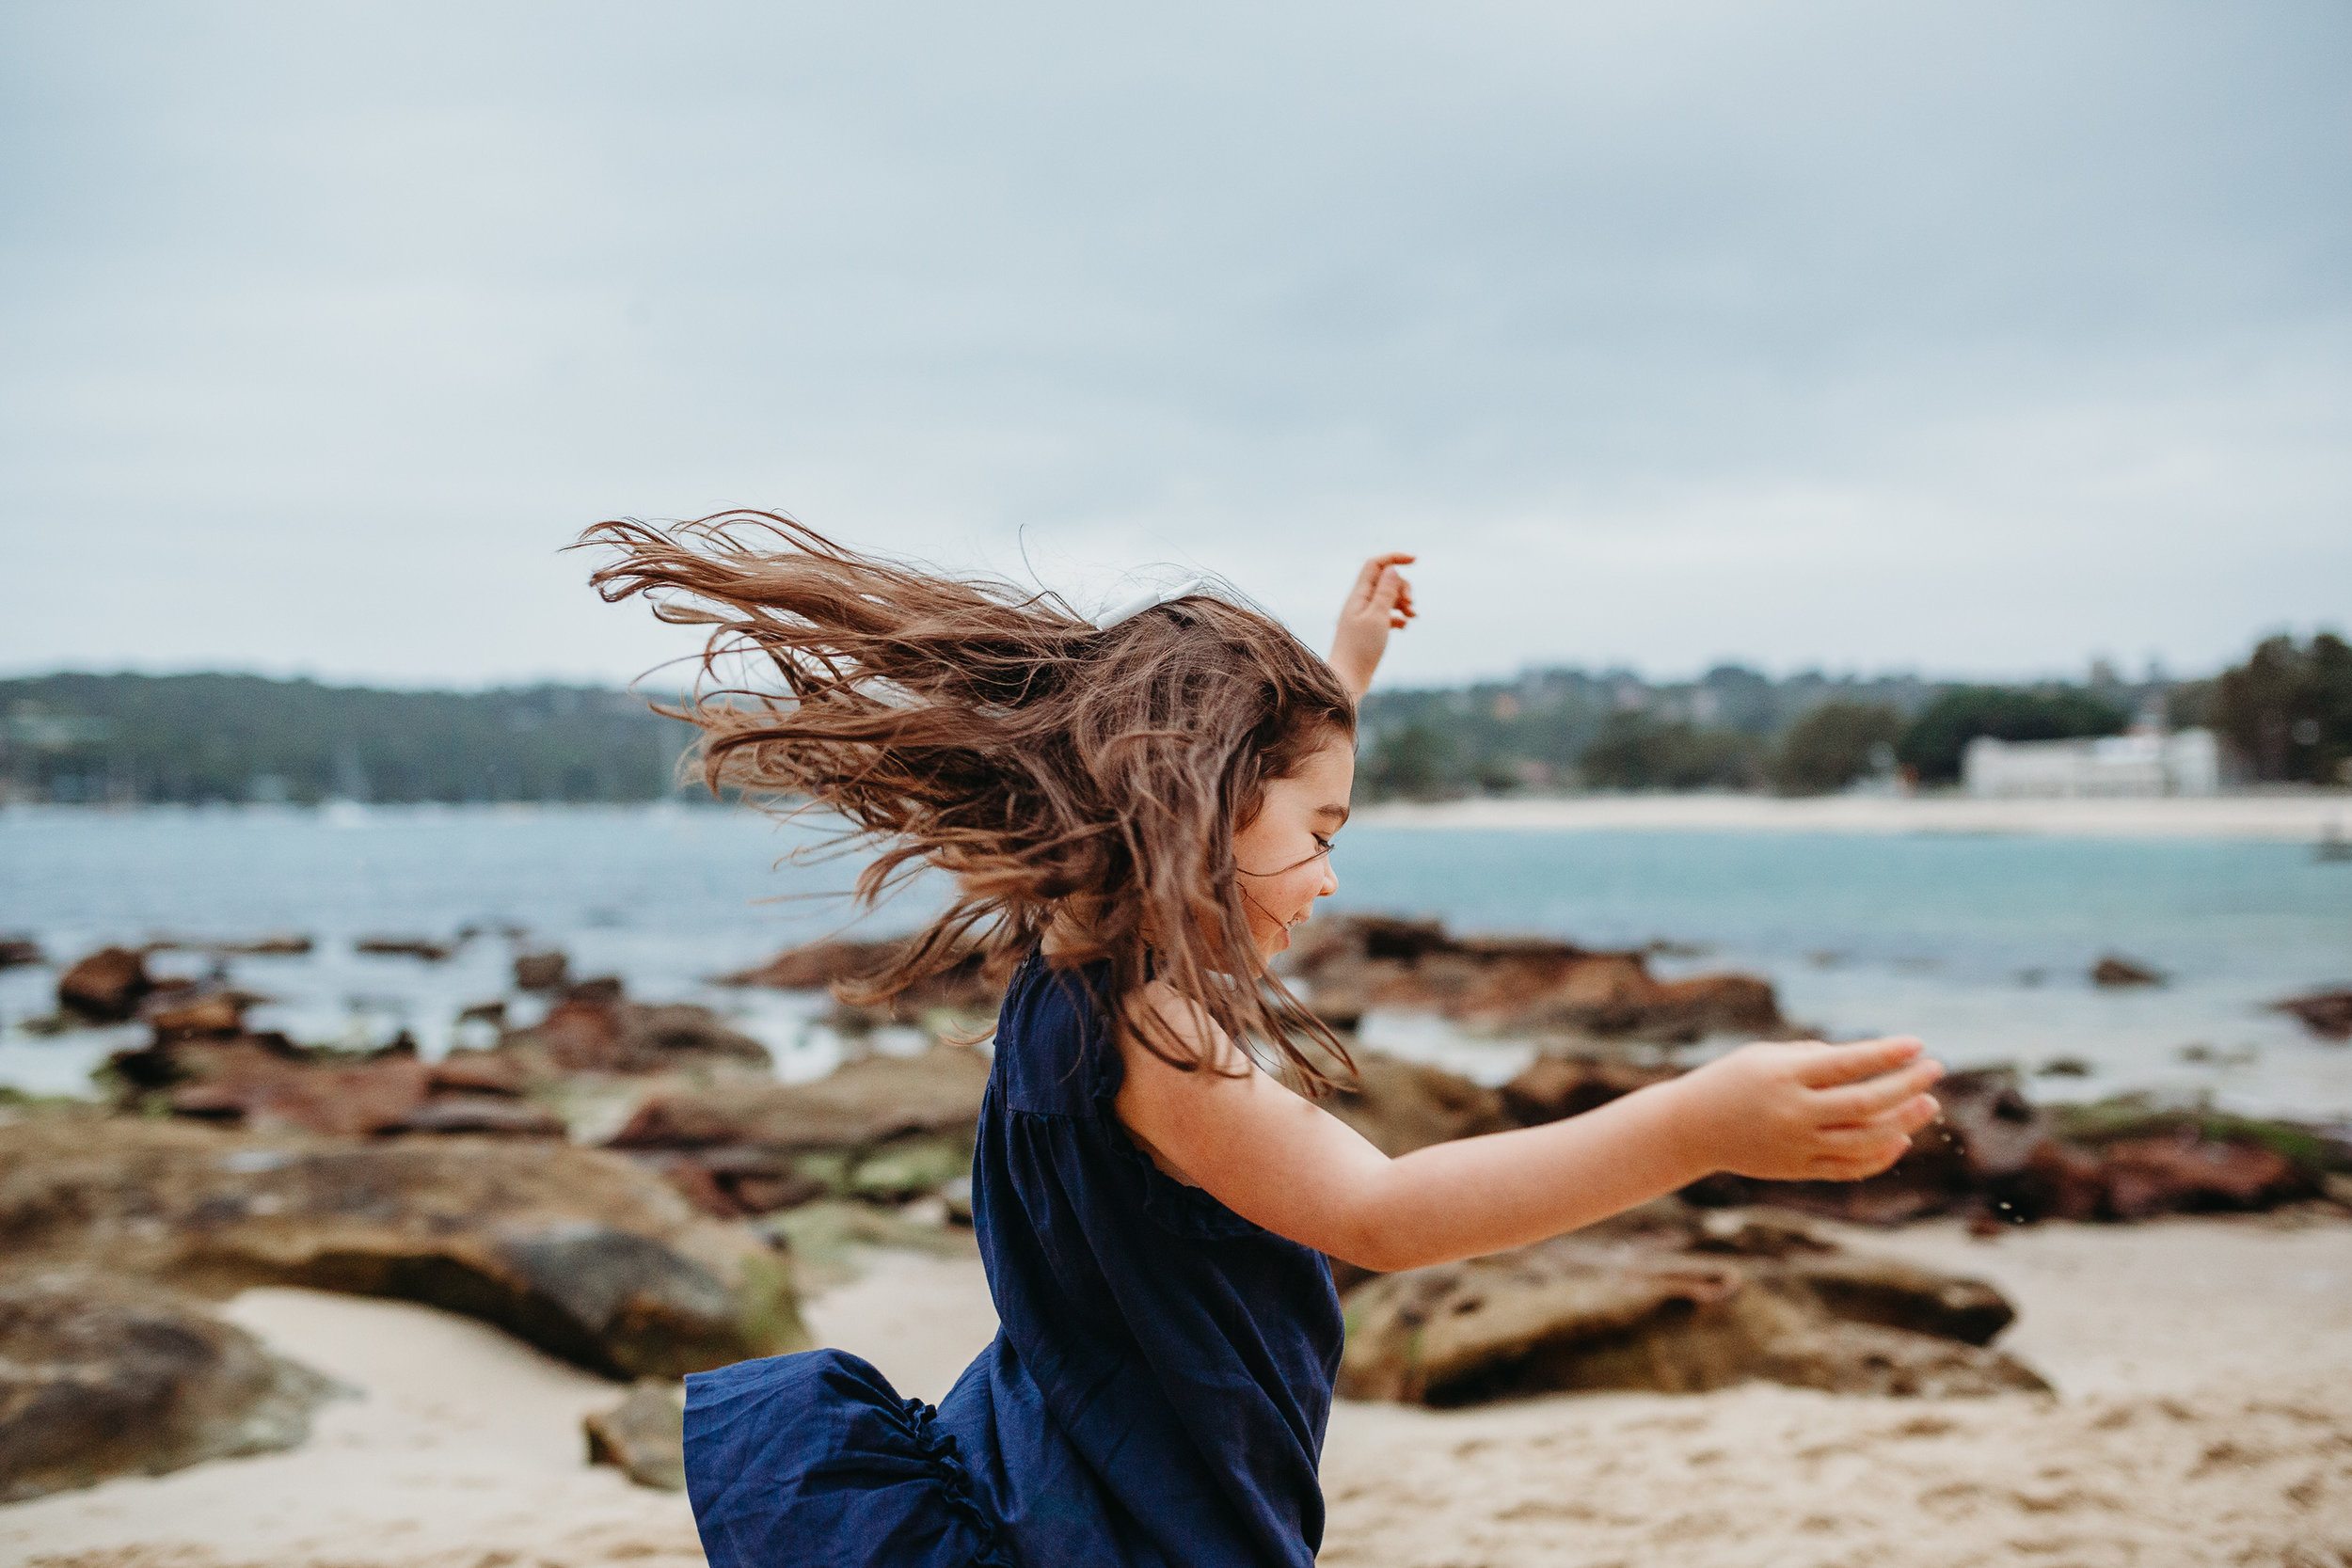 Twirl girl - Balmoral beach